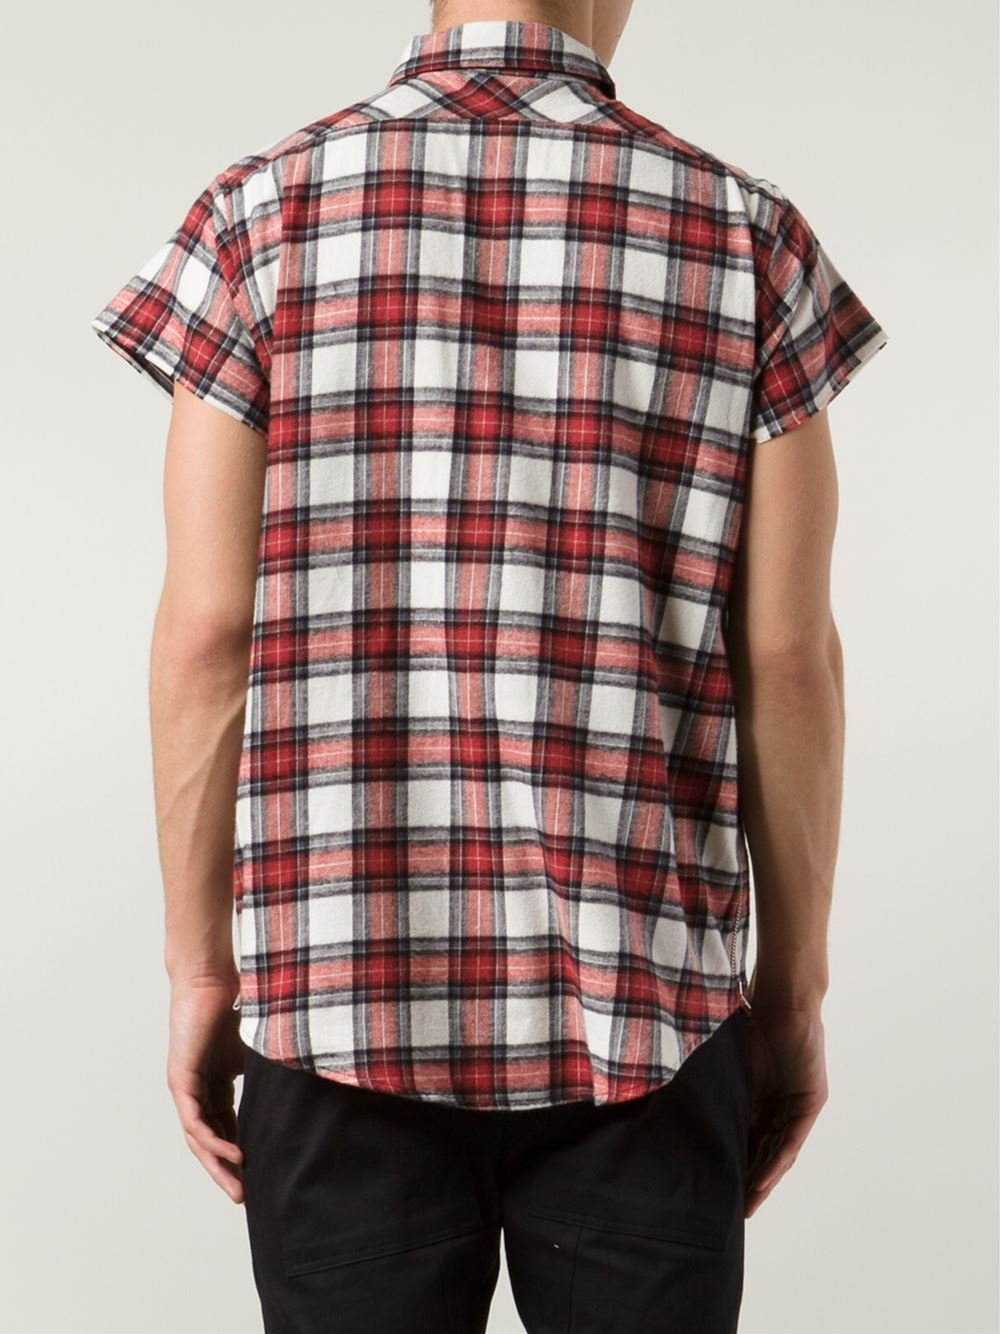 Lyst fear of god short sleeve plaid shirt in red for men Short sleeve plaid shirts